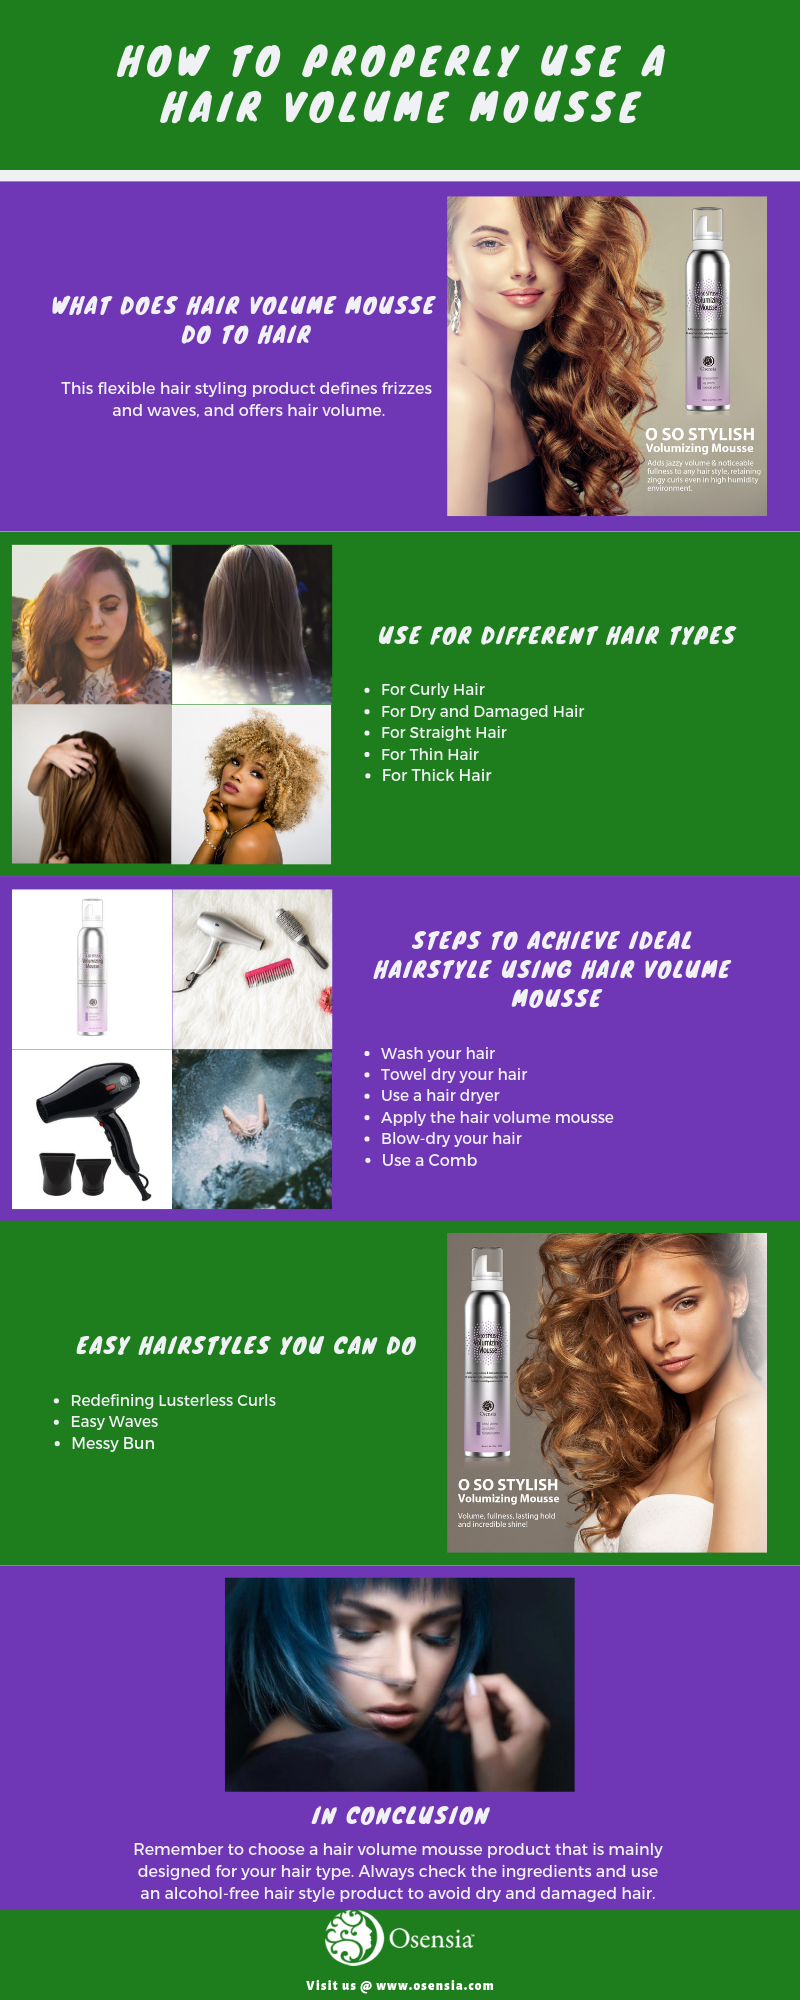 How To Properly Use A Hair Volume Mousse Osensia